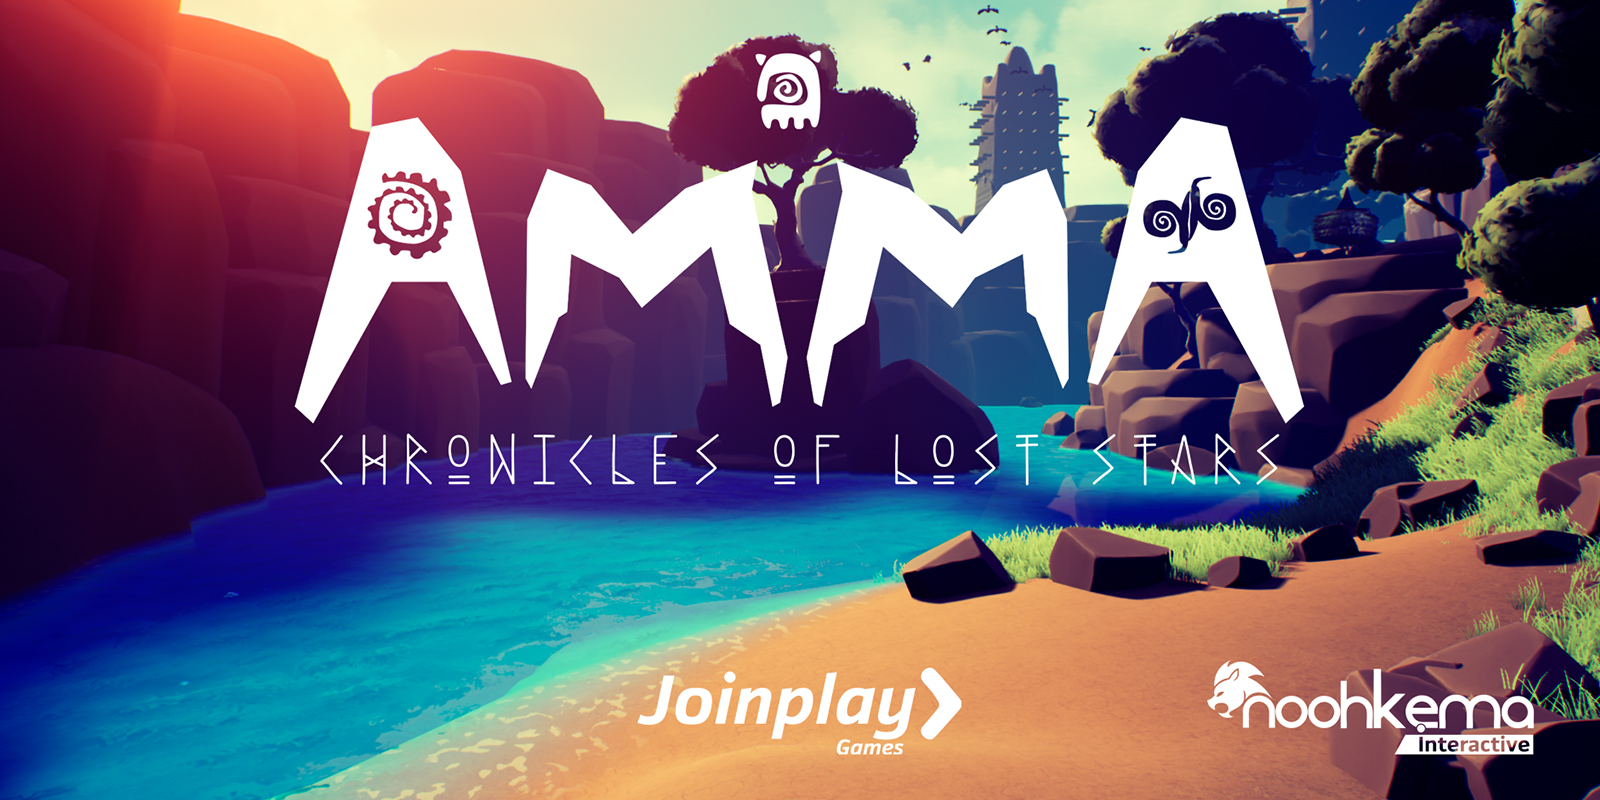 Amma: Chronicles of lost stars